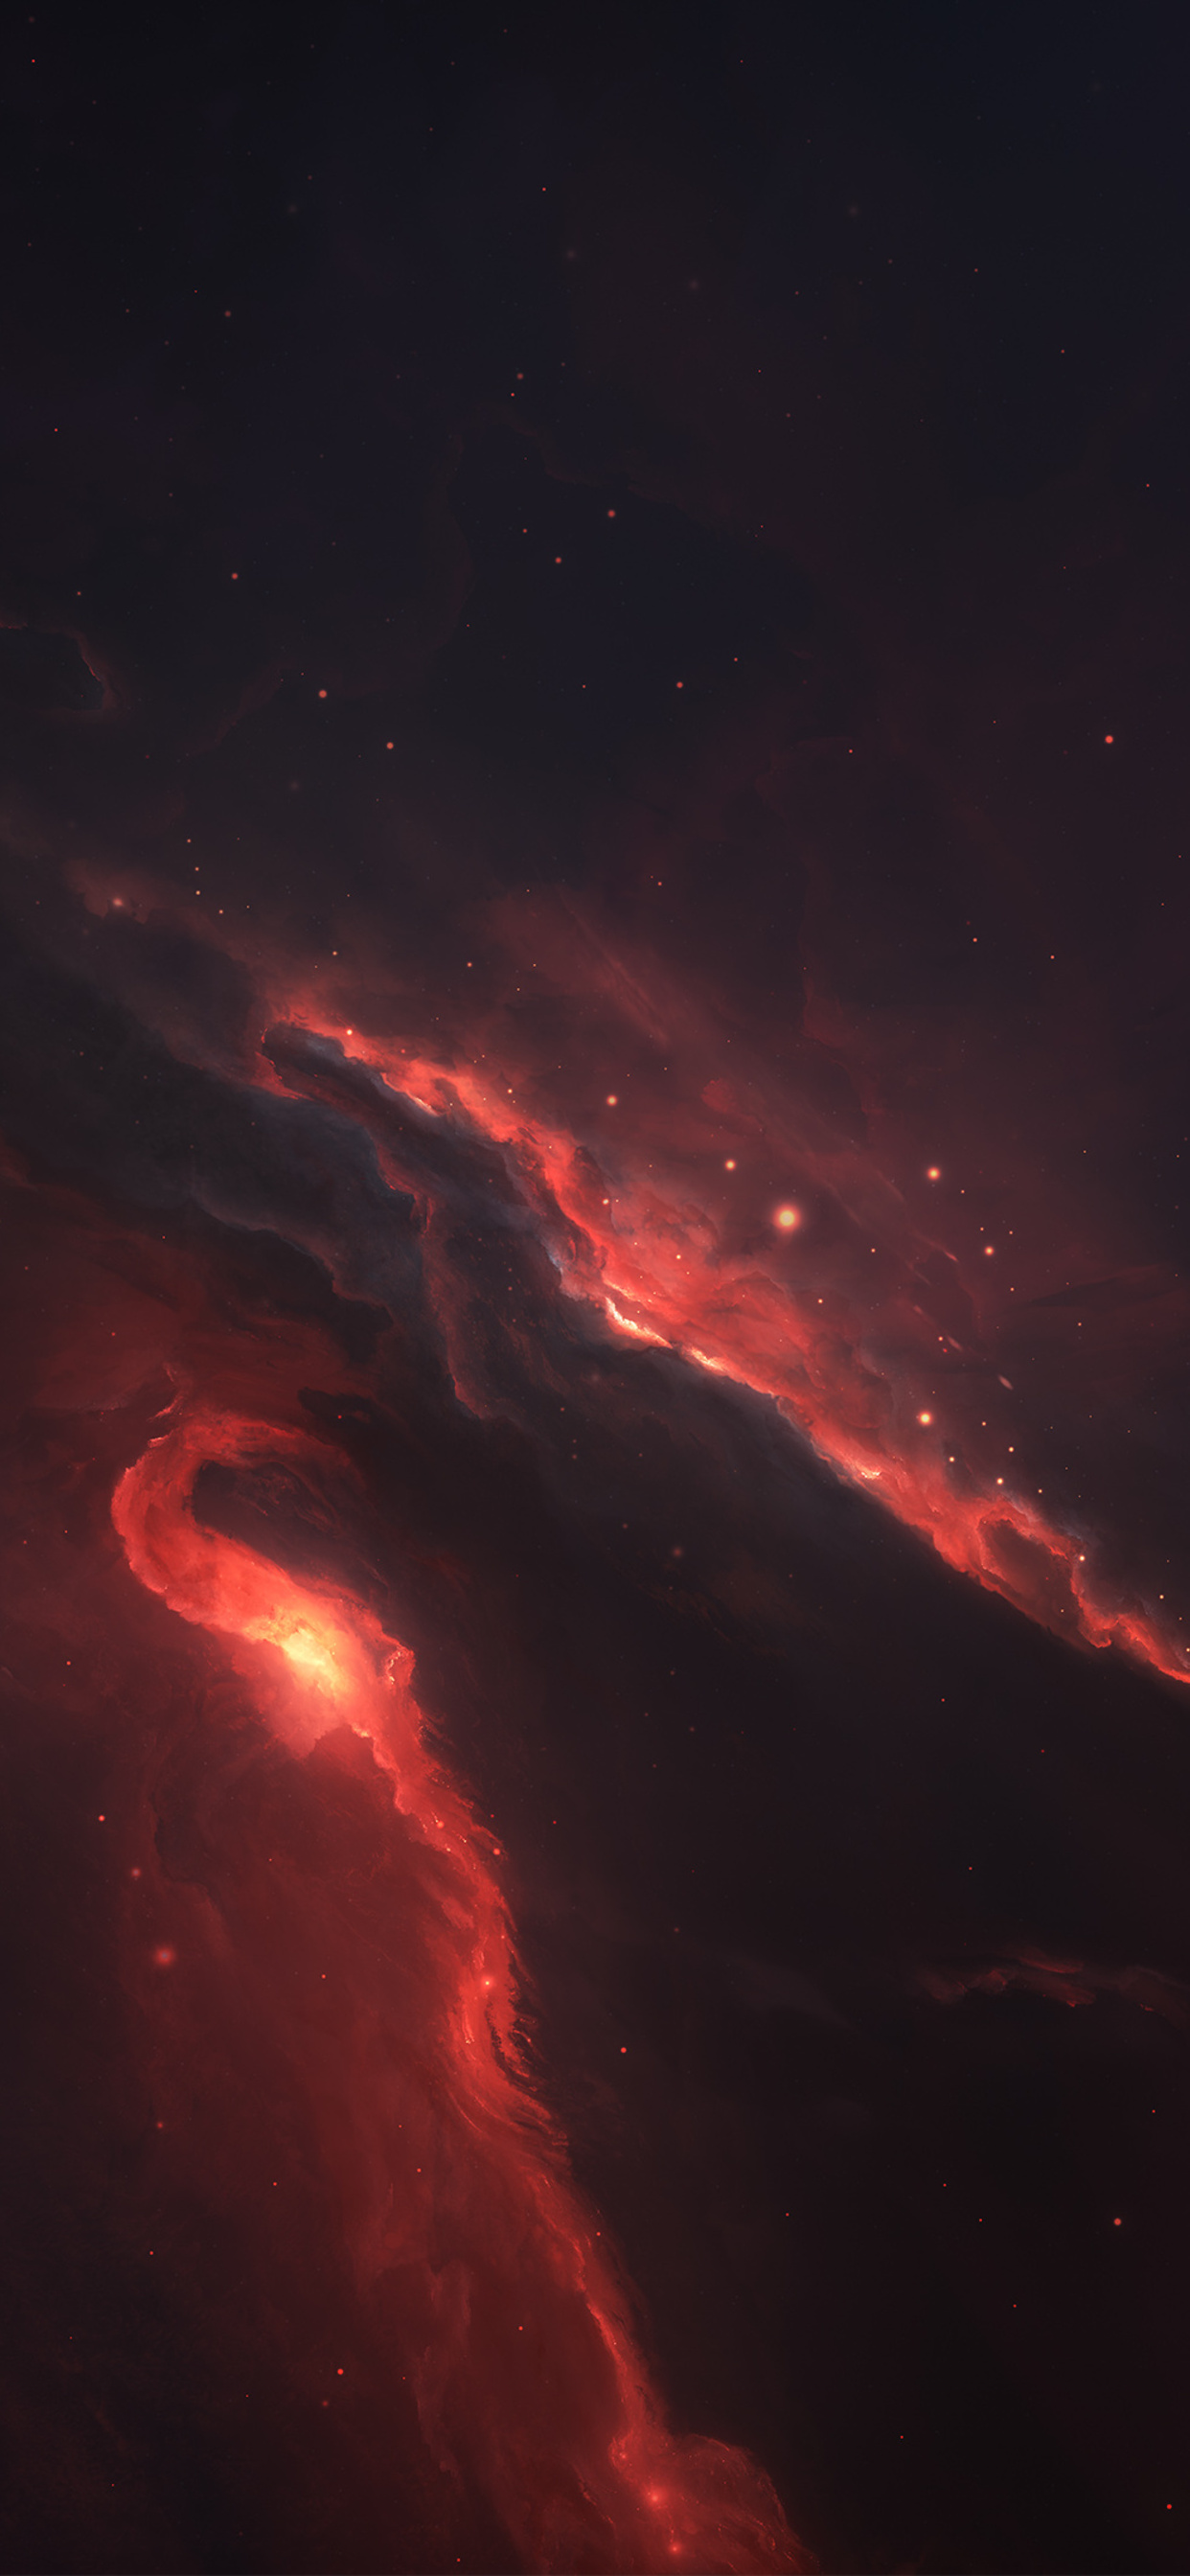 1242x2688 Nebula Space Scenery 4k Iphone Xs Max Hd 4k Wallpapers